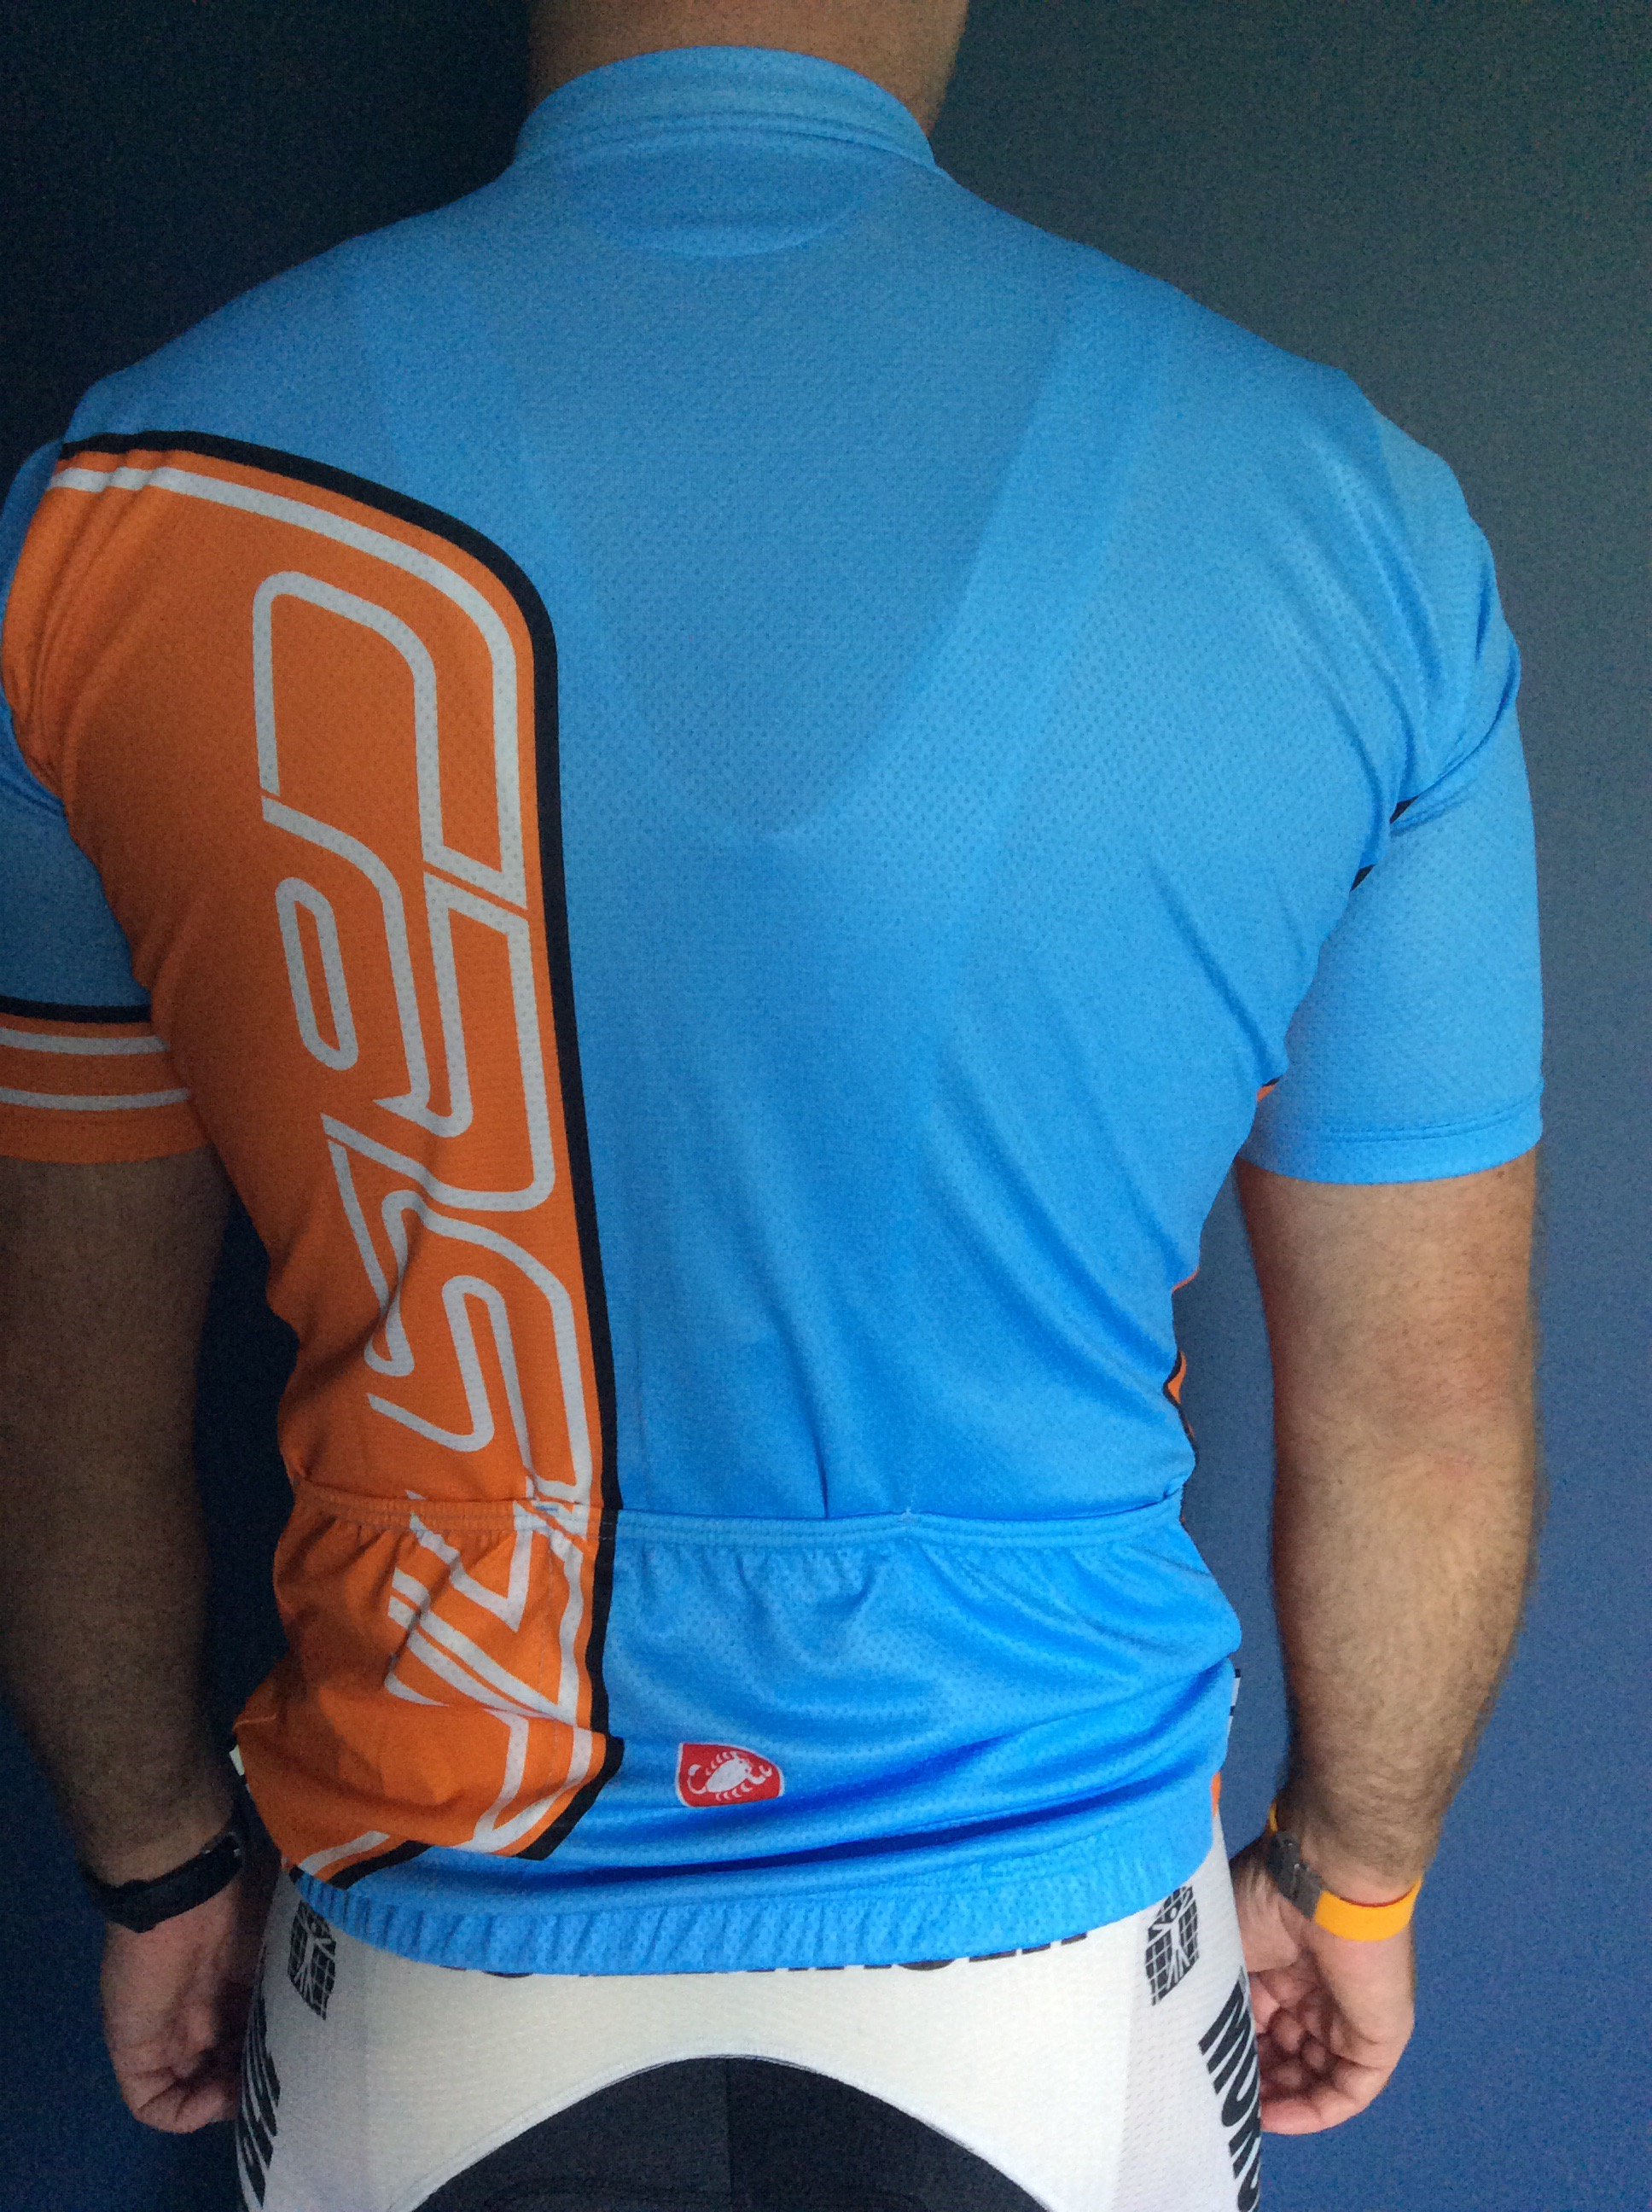 Fresh out of the bag with the blue, orange, white, and black colors of the old Gulf Ford GT40 from the 1960s . This is the same size I order for other Castelli garments, only this one is extremely loose around the pocket area. Castelli stated this jersey should be tight-fitting without any flapping. I returned it for the next size down.